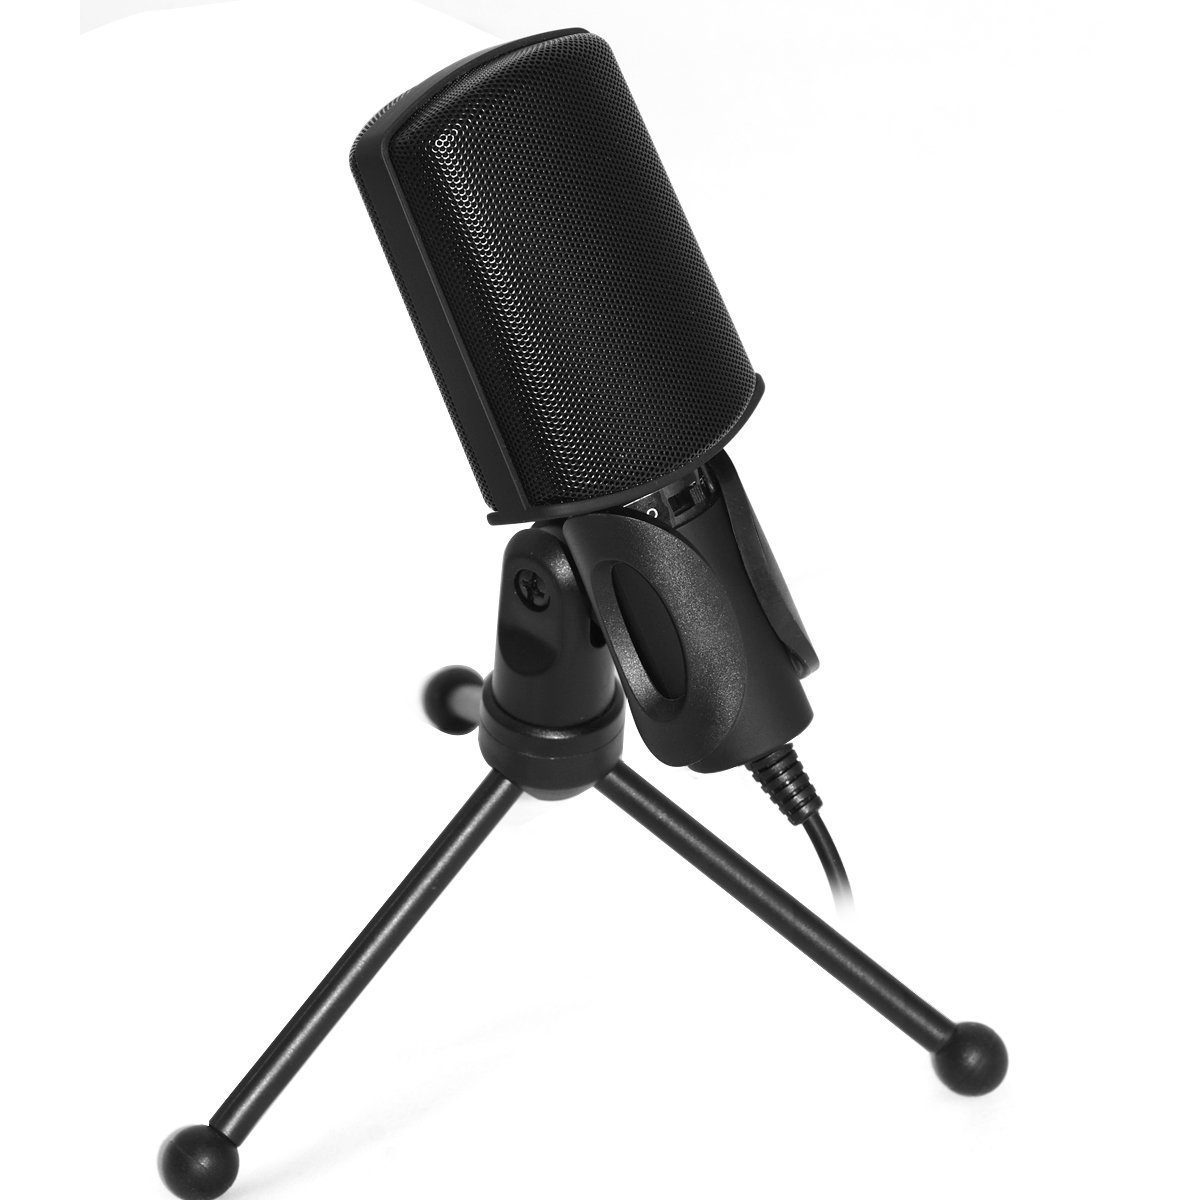 Chicone Professional Condenser Microphone with Stand SF-920 Recording Microphone for PC Laptop